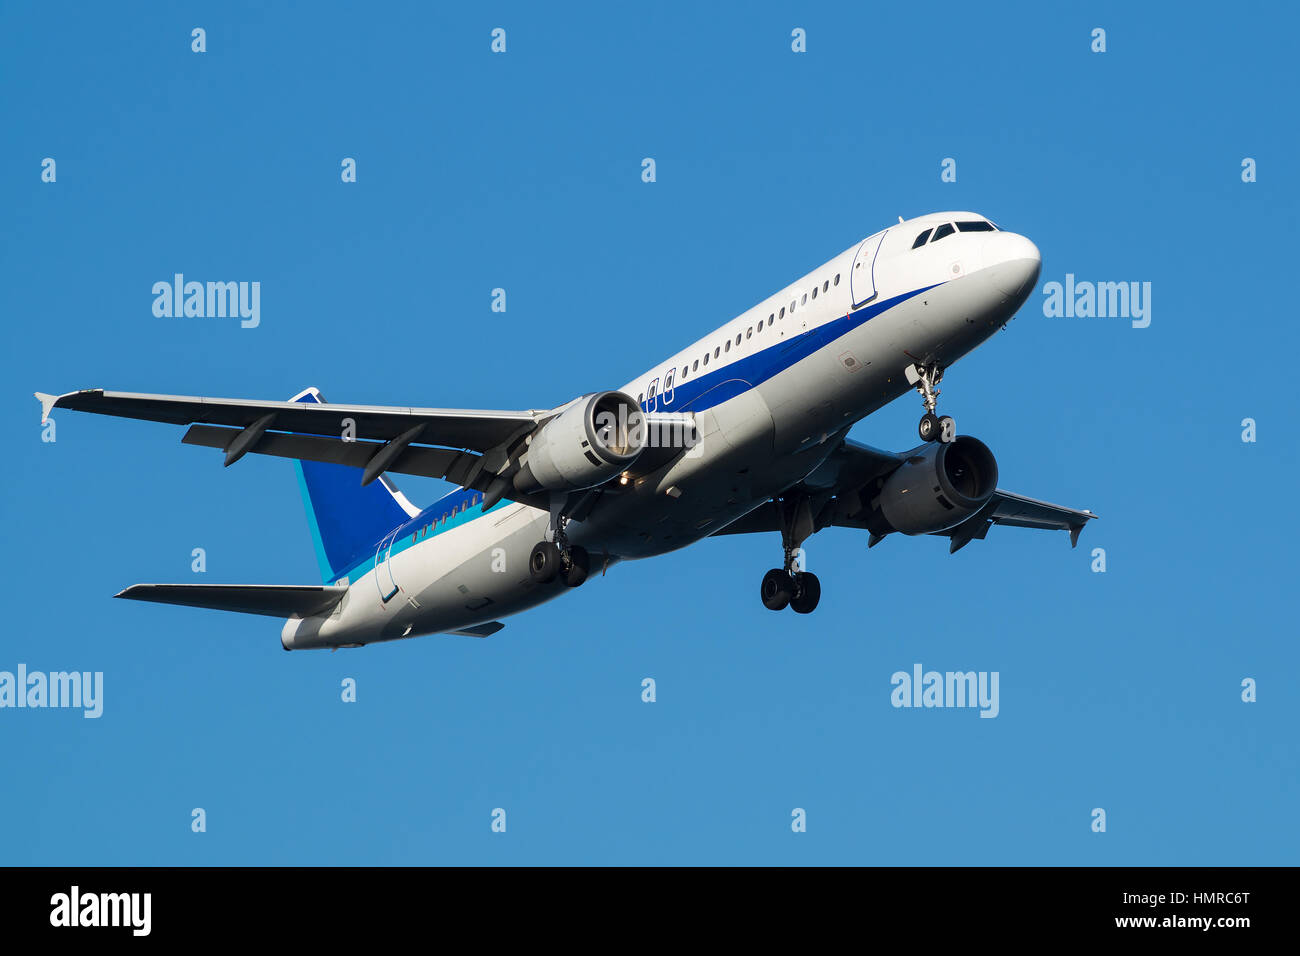 Airbus A320-200 - Stock Image